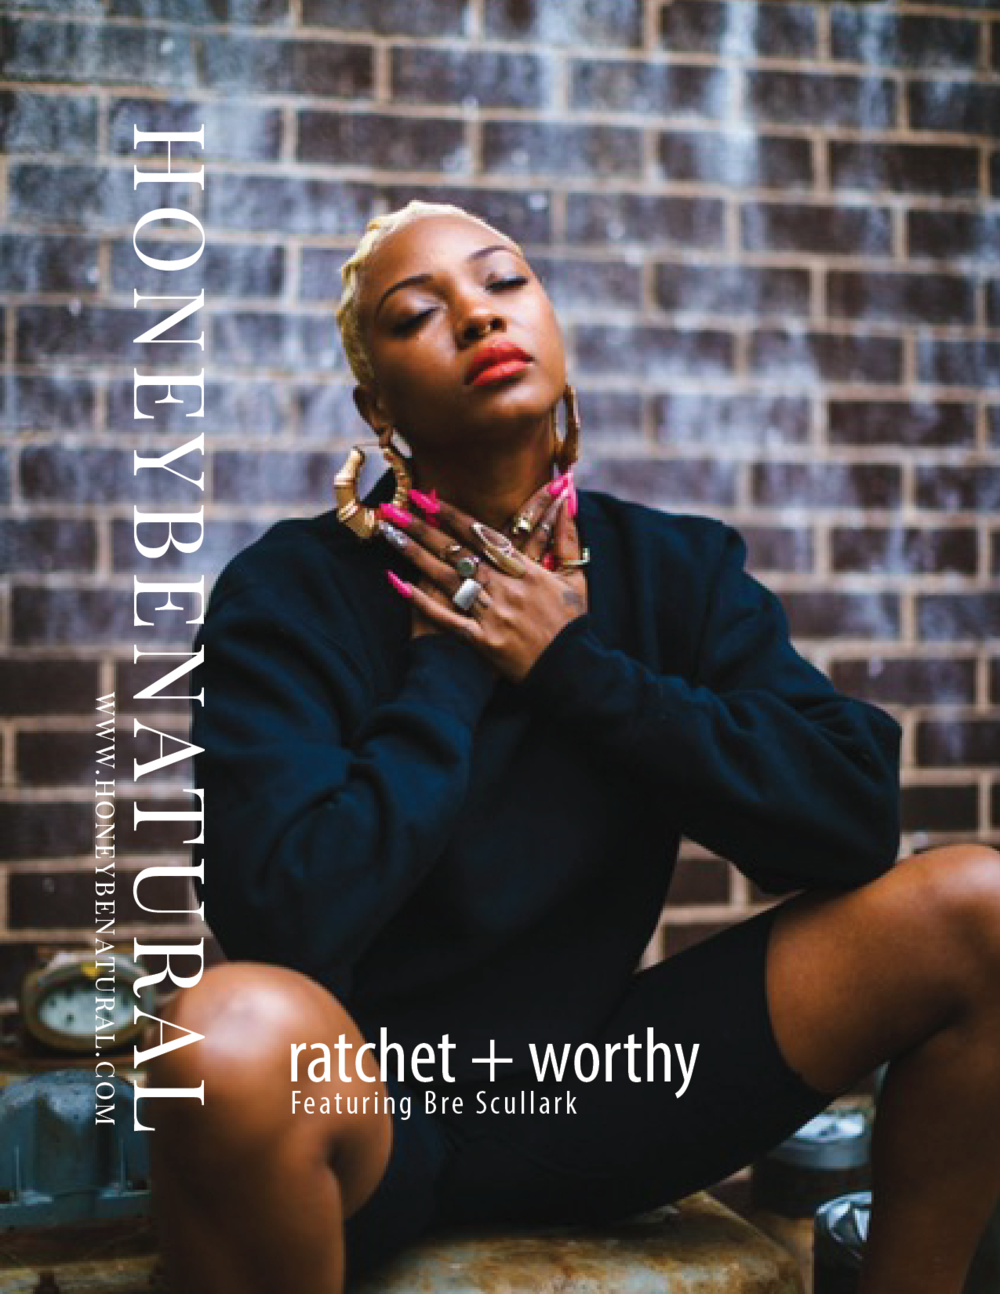 RatchetWorthy-01.png